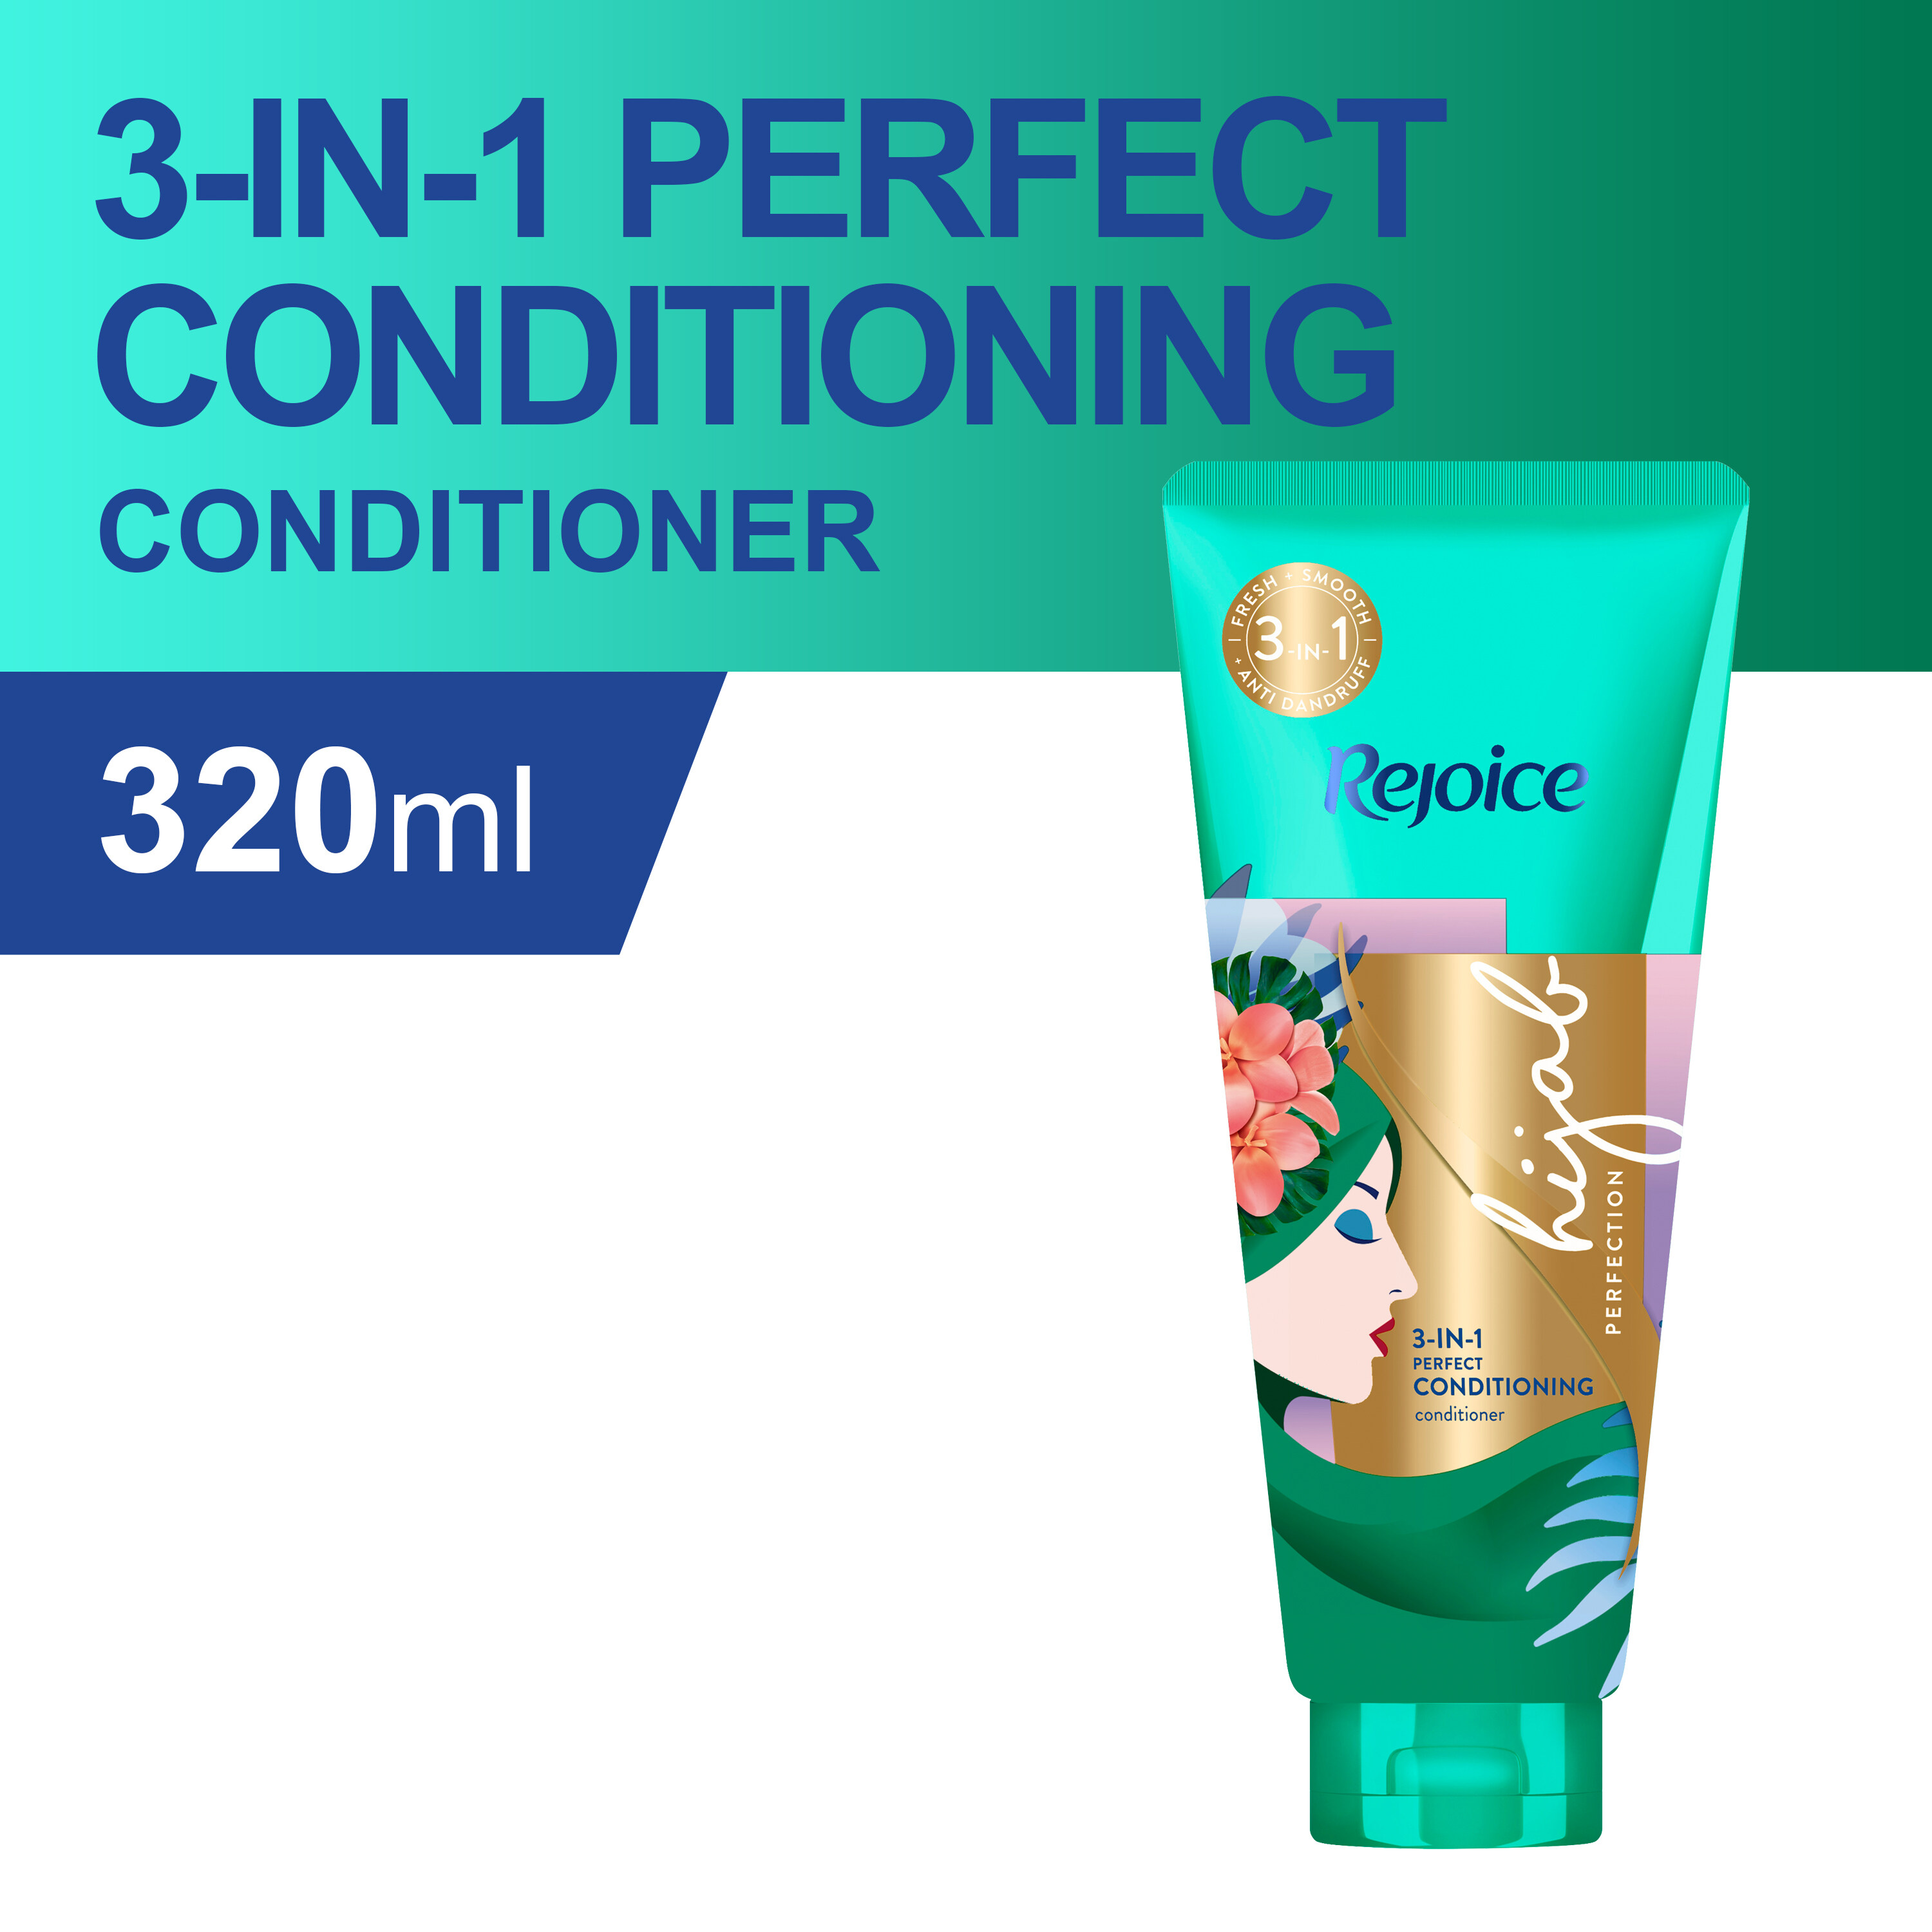 Rejoice 3-in-1 Perfect Conditioning Conditioner 320ml